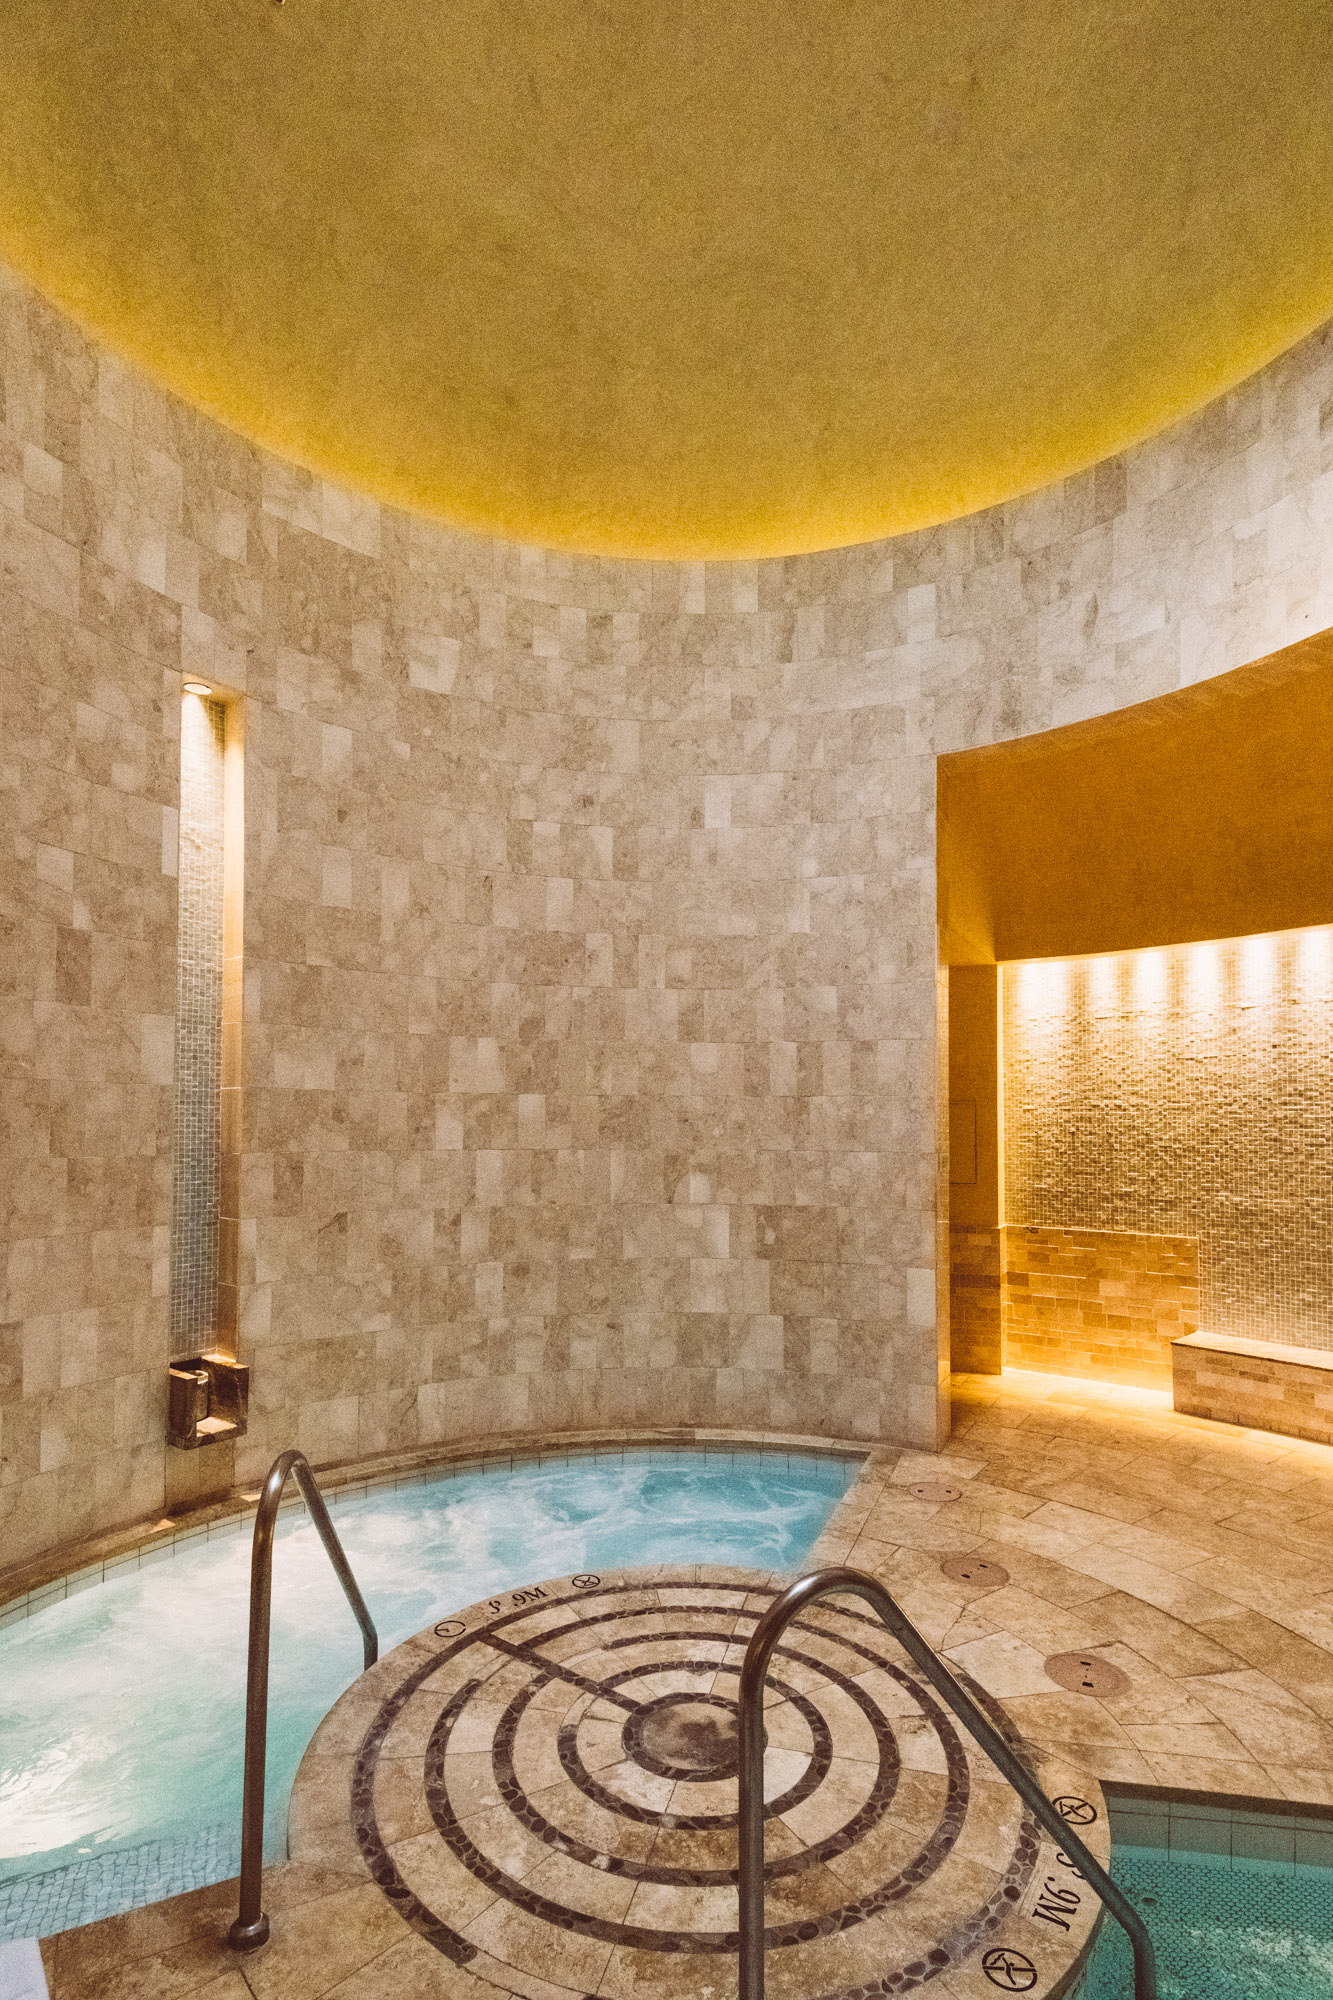 Things To Do In Phoenix — Well & Being Spa at Fairmont Scottsdale Princess — Jeff On The Road — All photos are under Copyright  © 2019 Jeff Frenette Photography / dezjeff. To use the photos, please contact me at dezjeff@me.com.